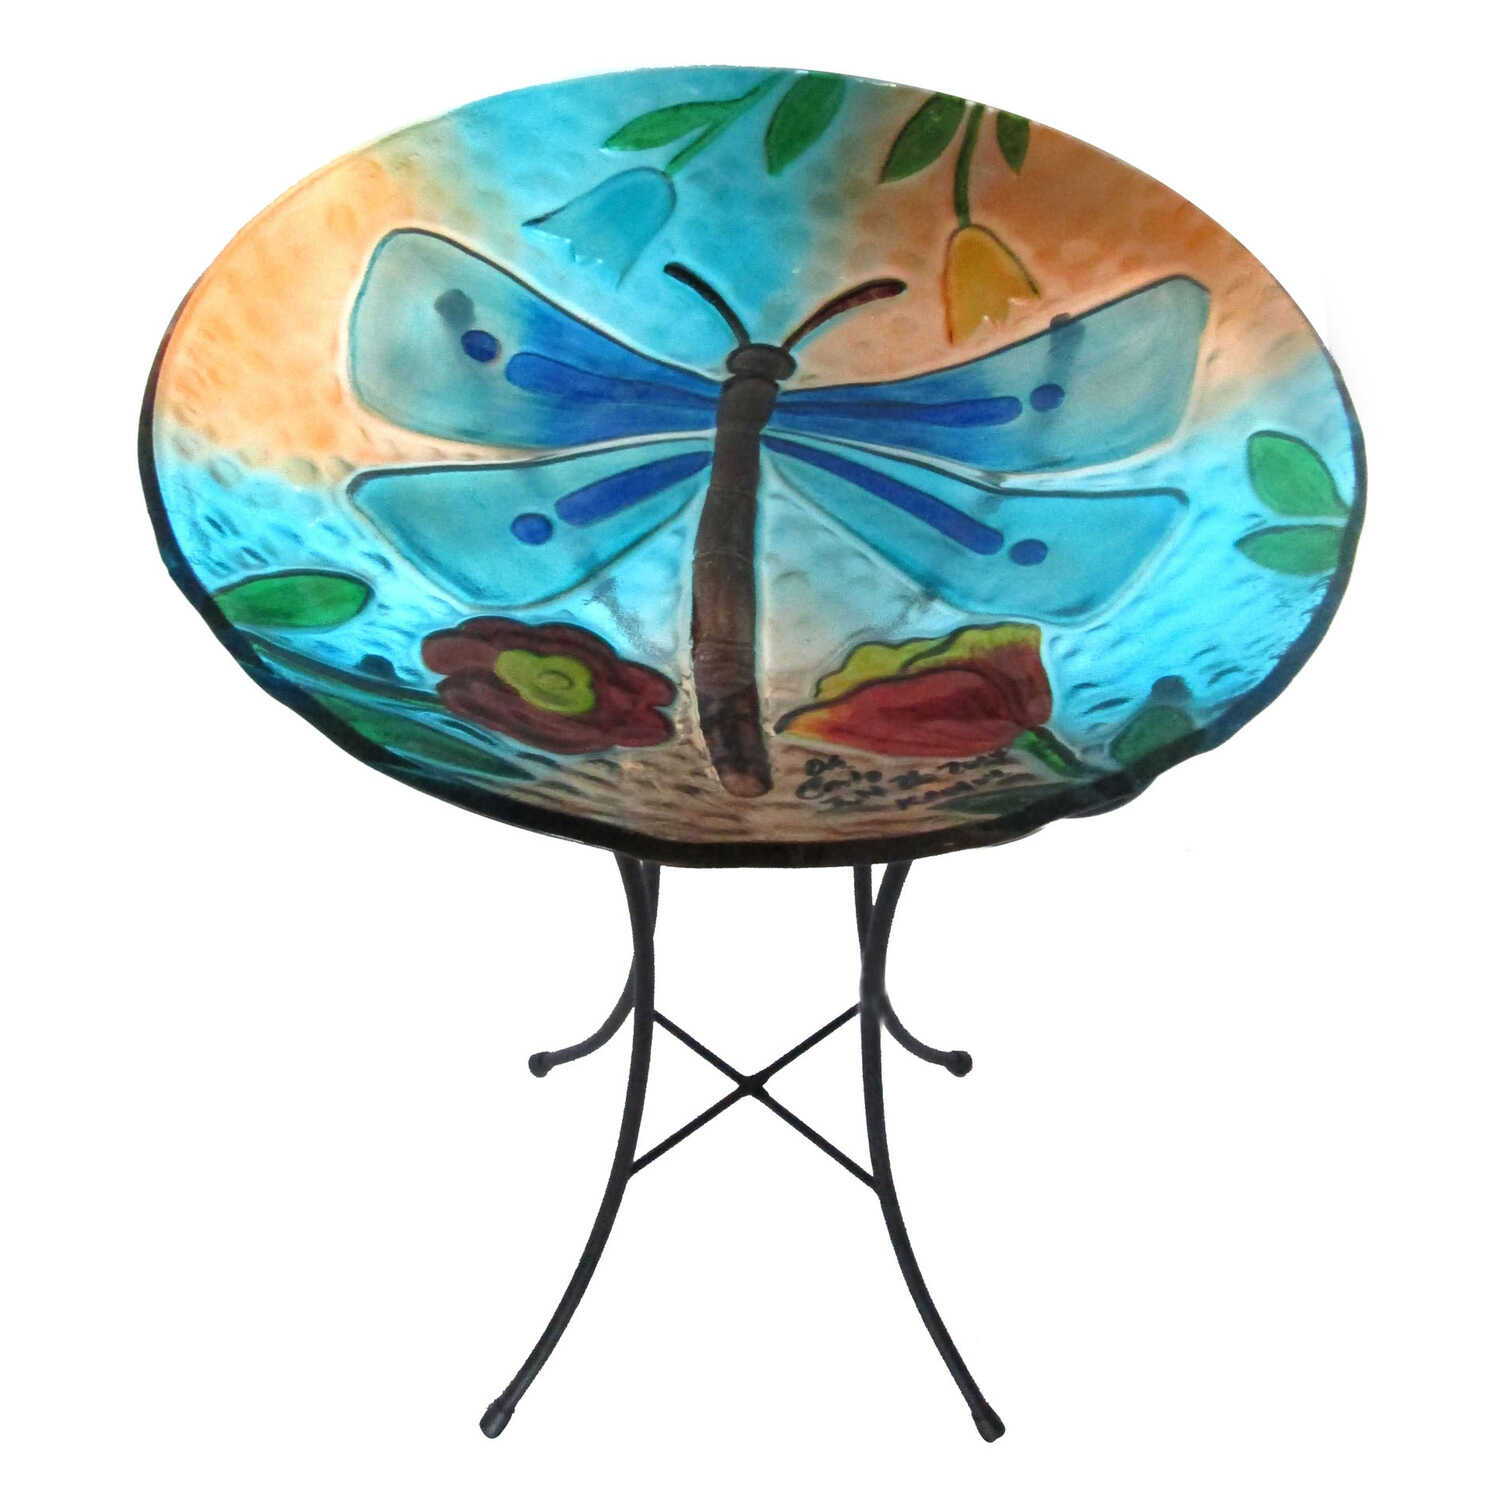 Infinity  Glass  25.5 in. Flying Insect  Bird Bath